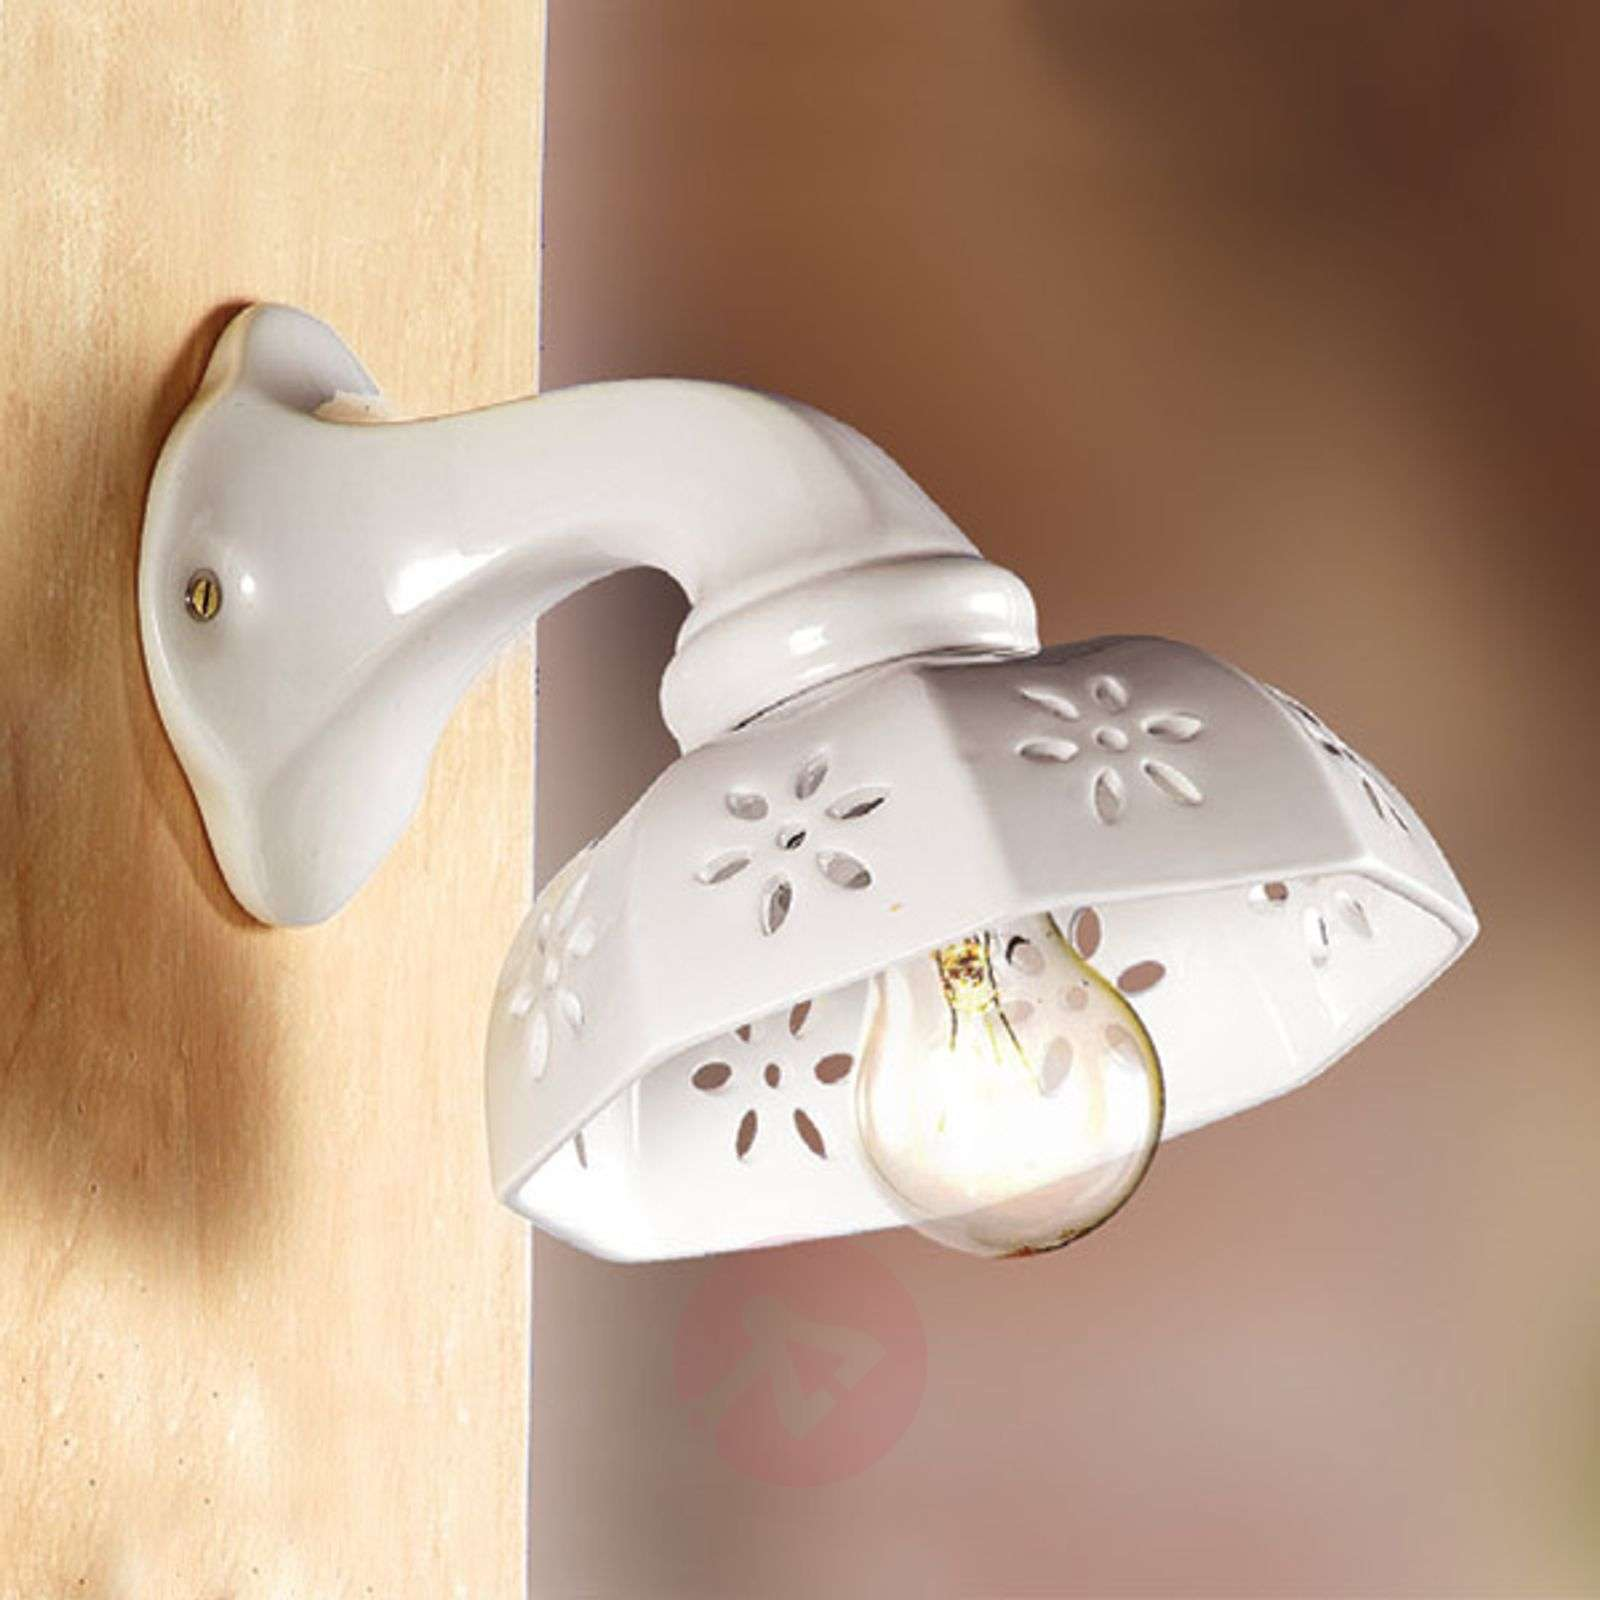 Acquista applique di ceramica bianca scodellina lampade.it